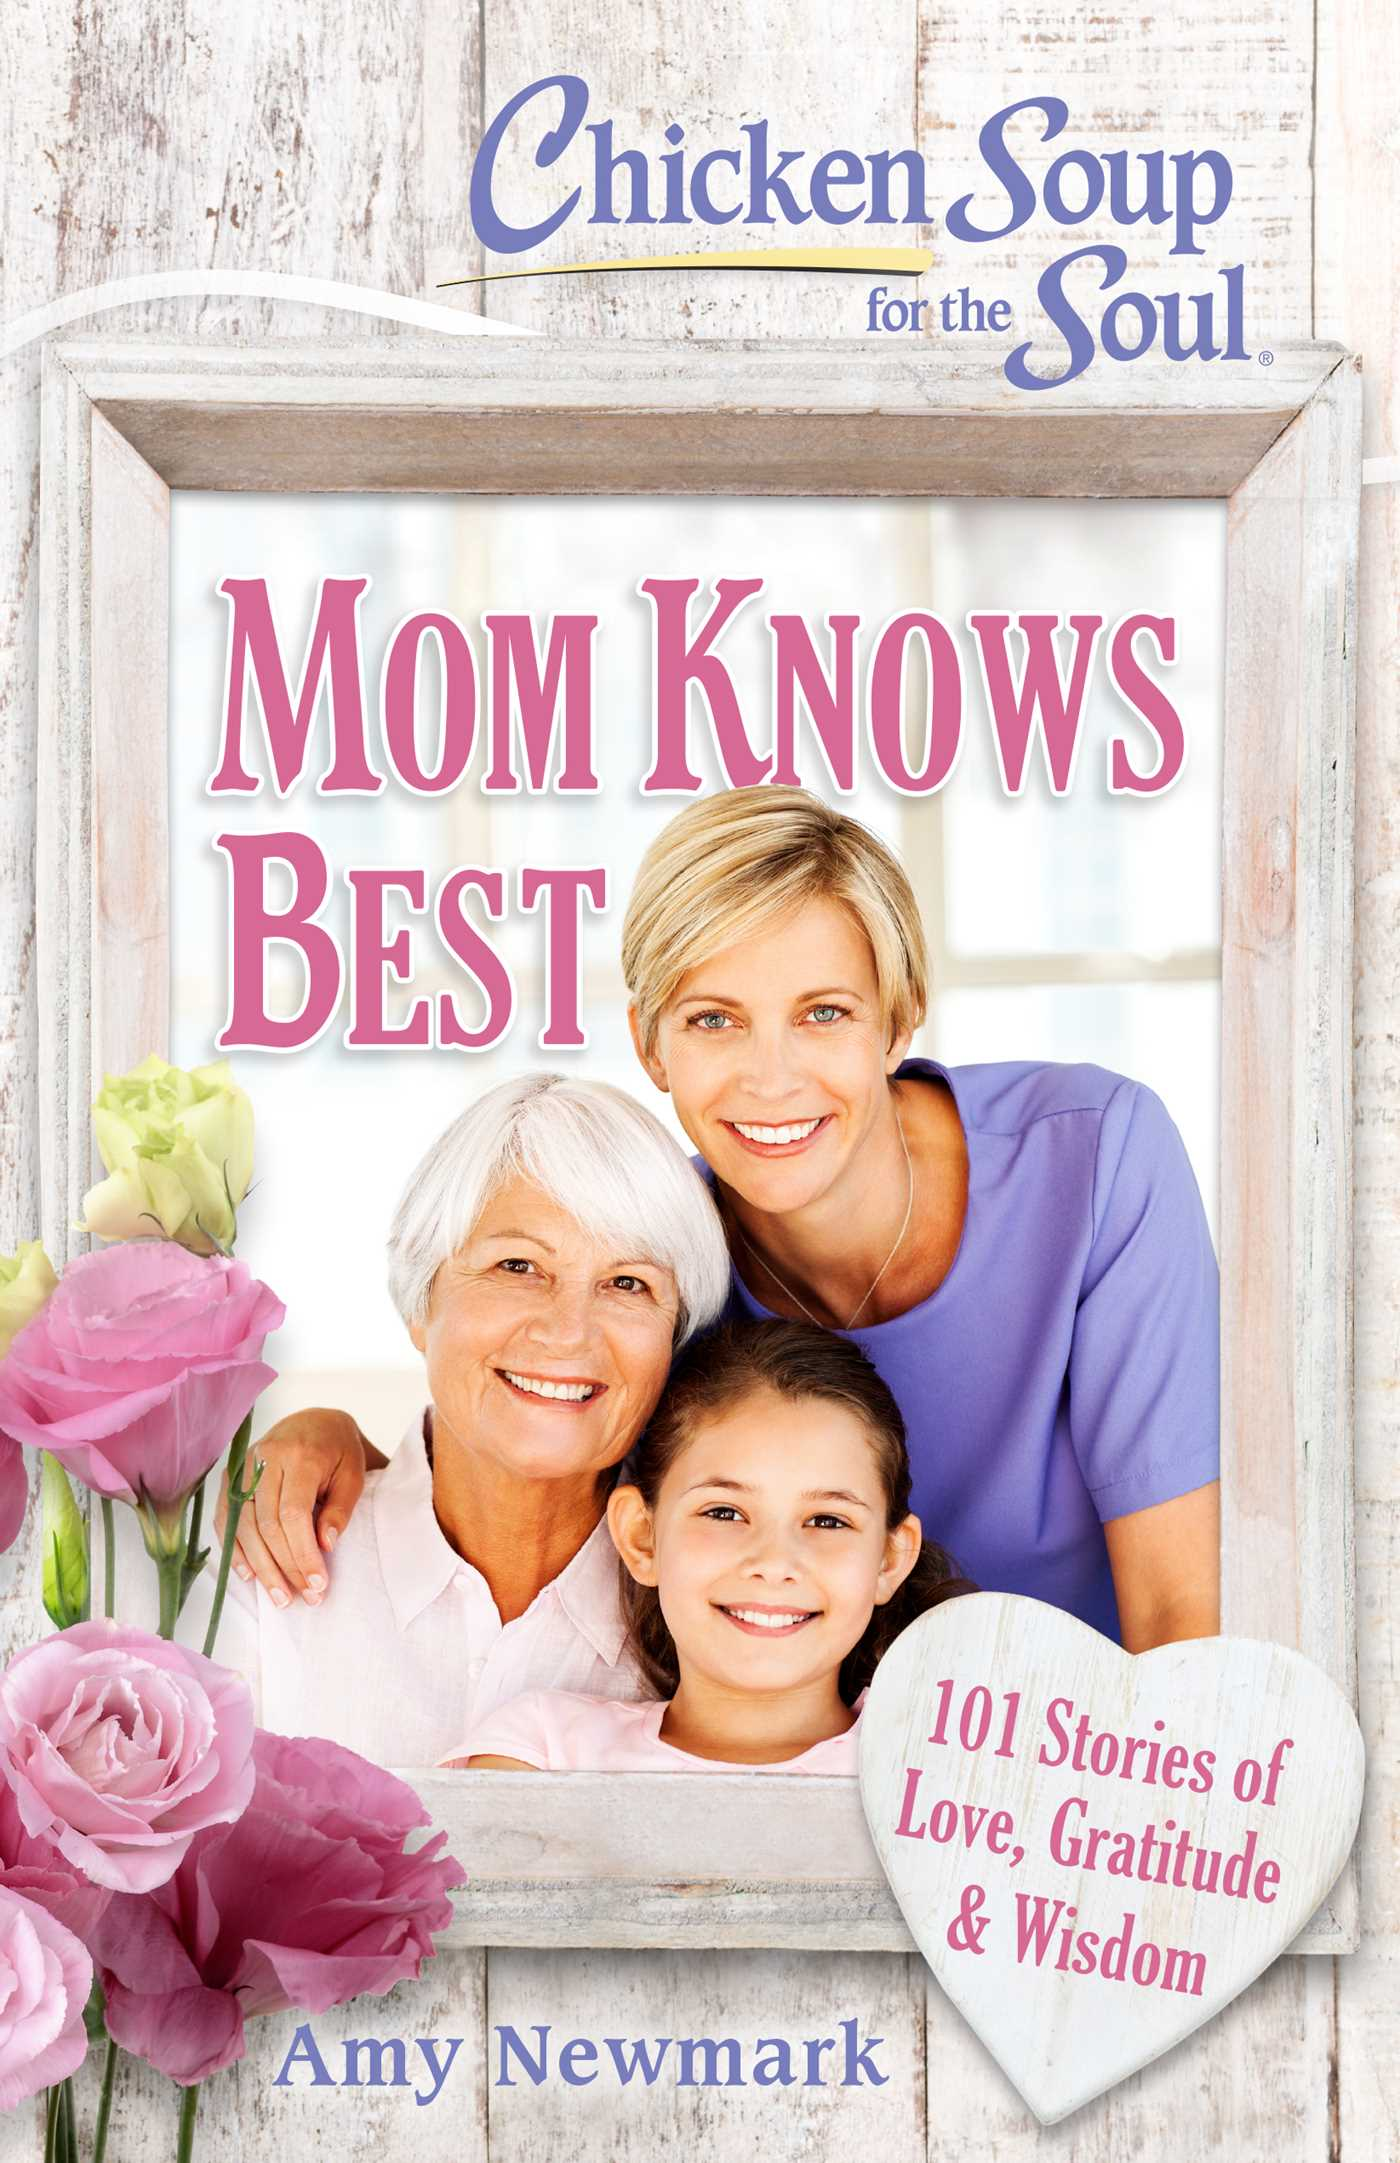 Mom Knows Best - YouTube